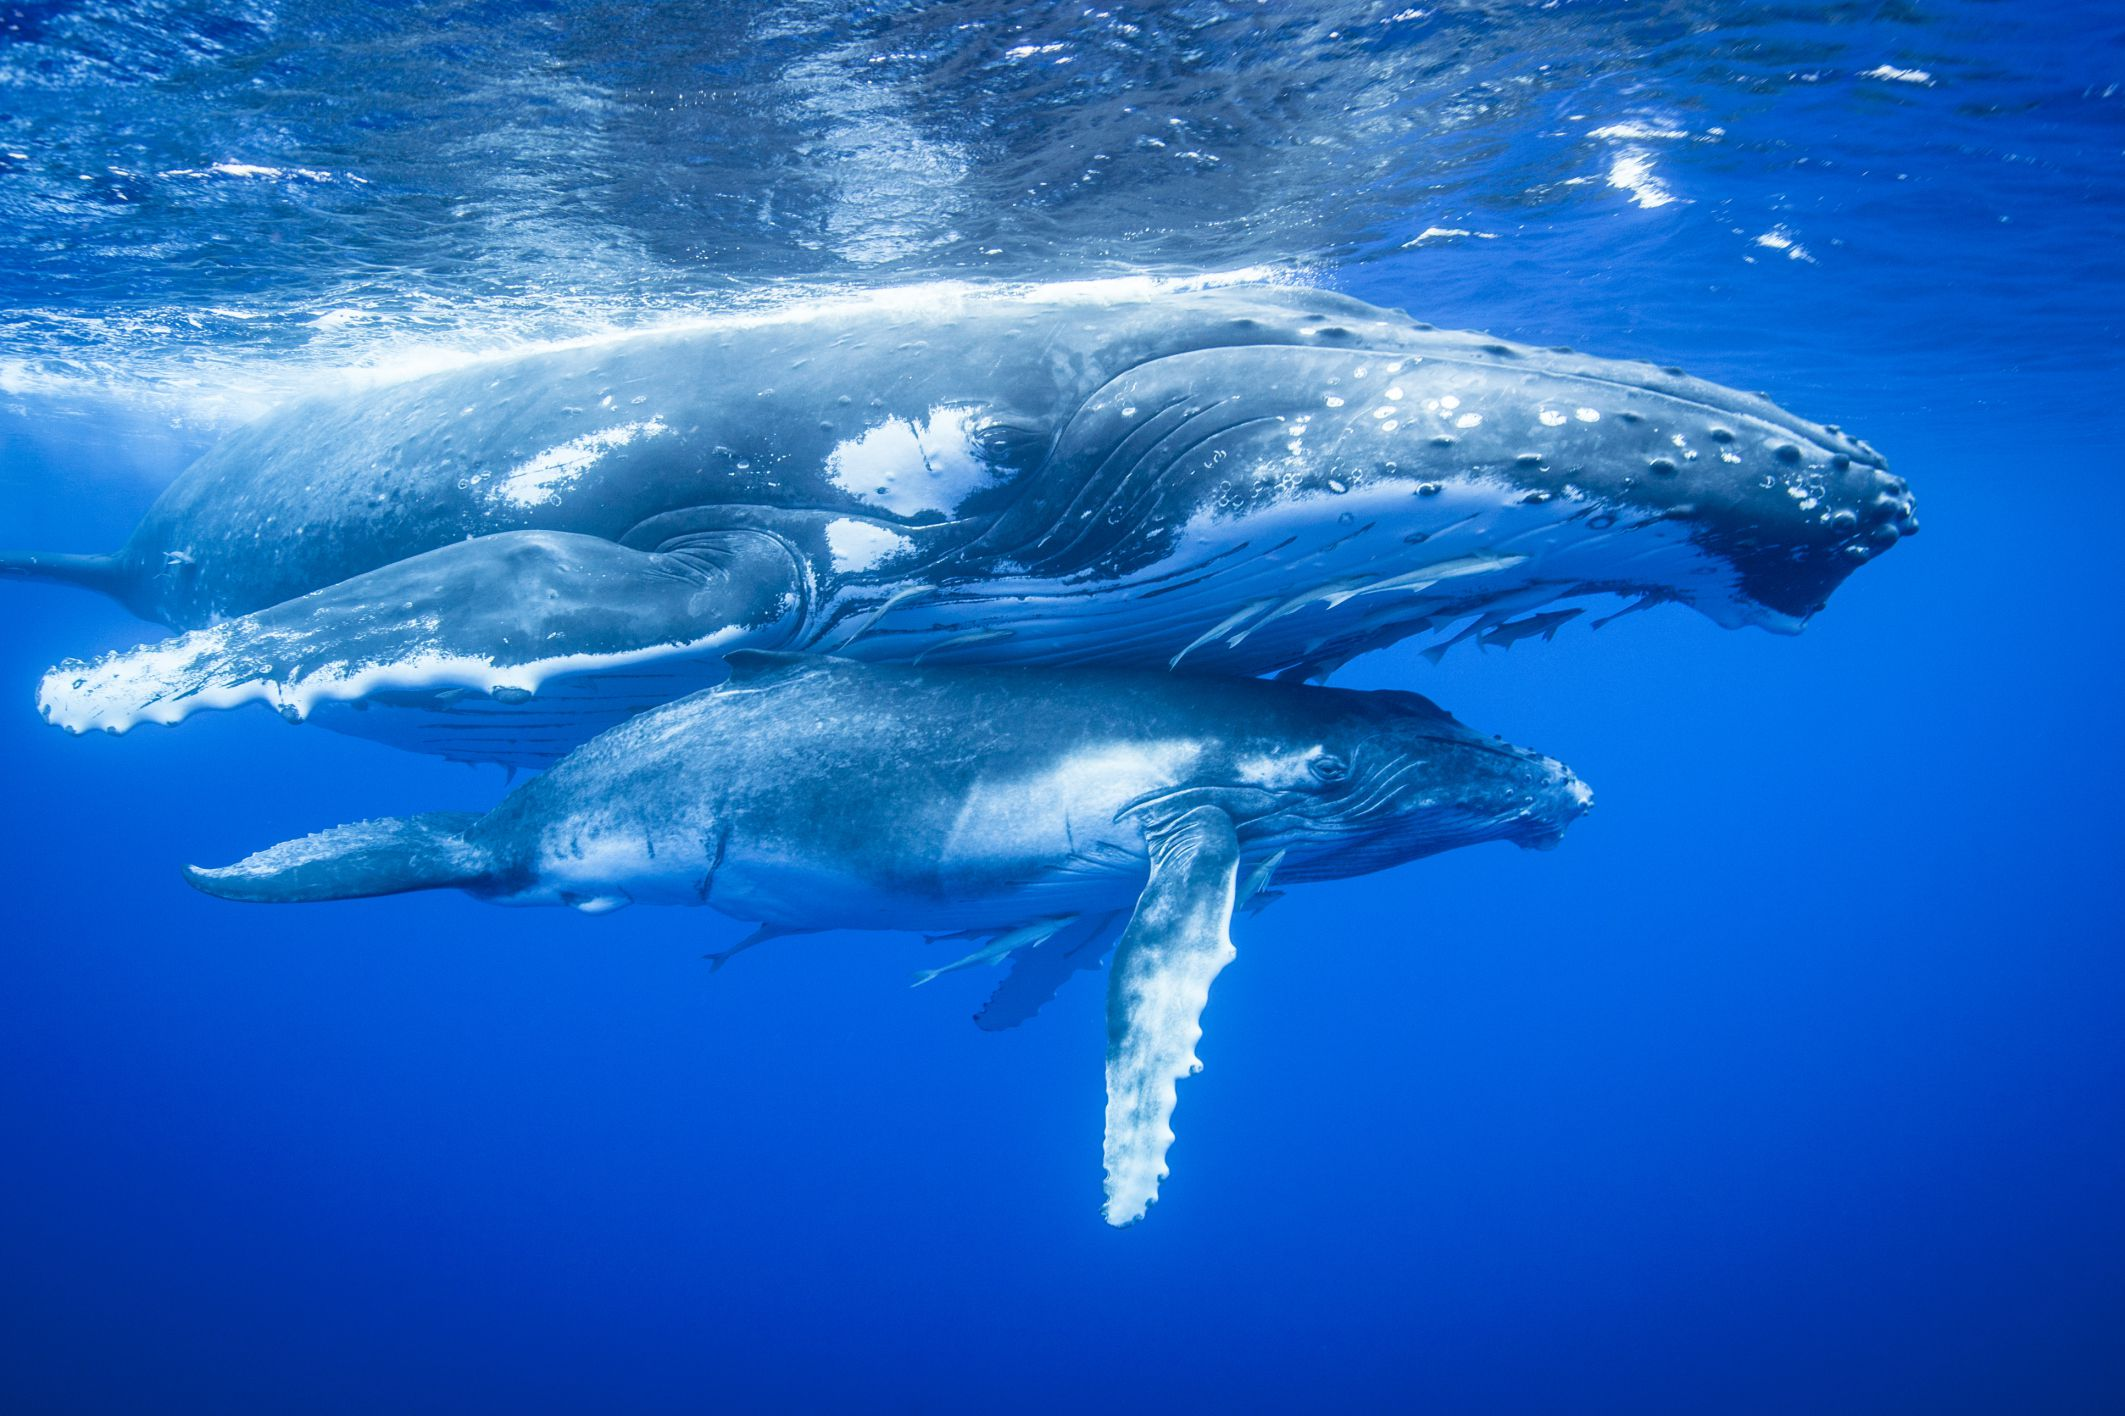 Blue Whale Wallpaper Hd Whale Species That Migrate And The Distance Traveled